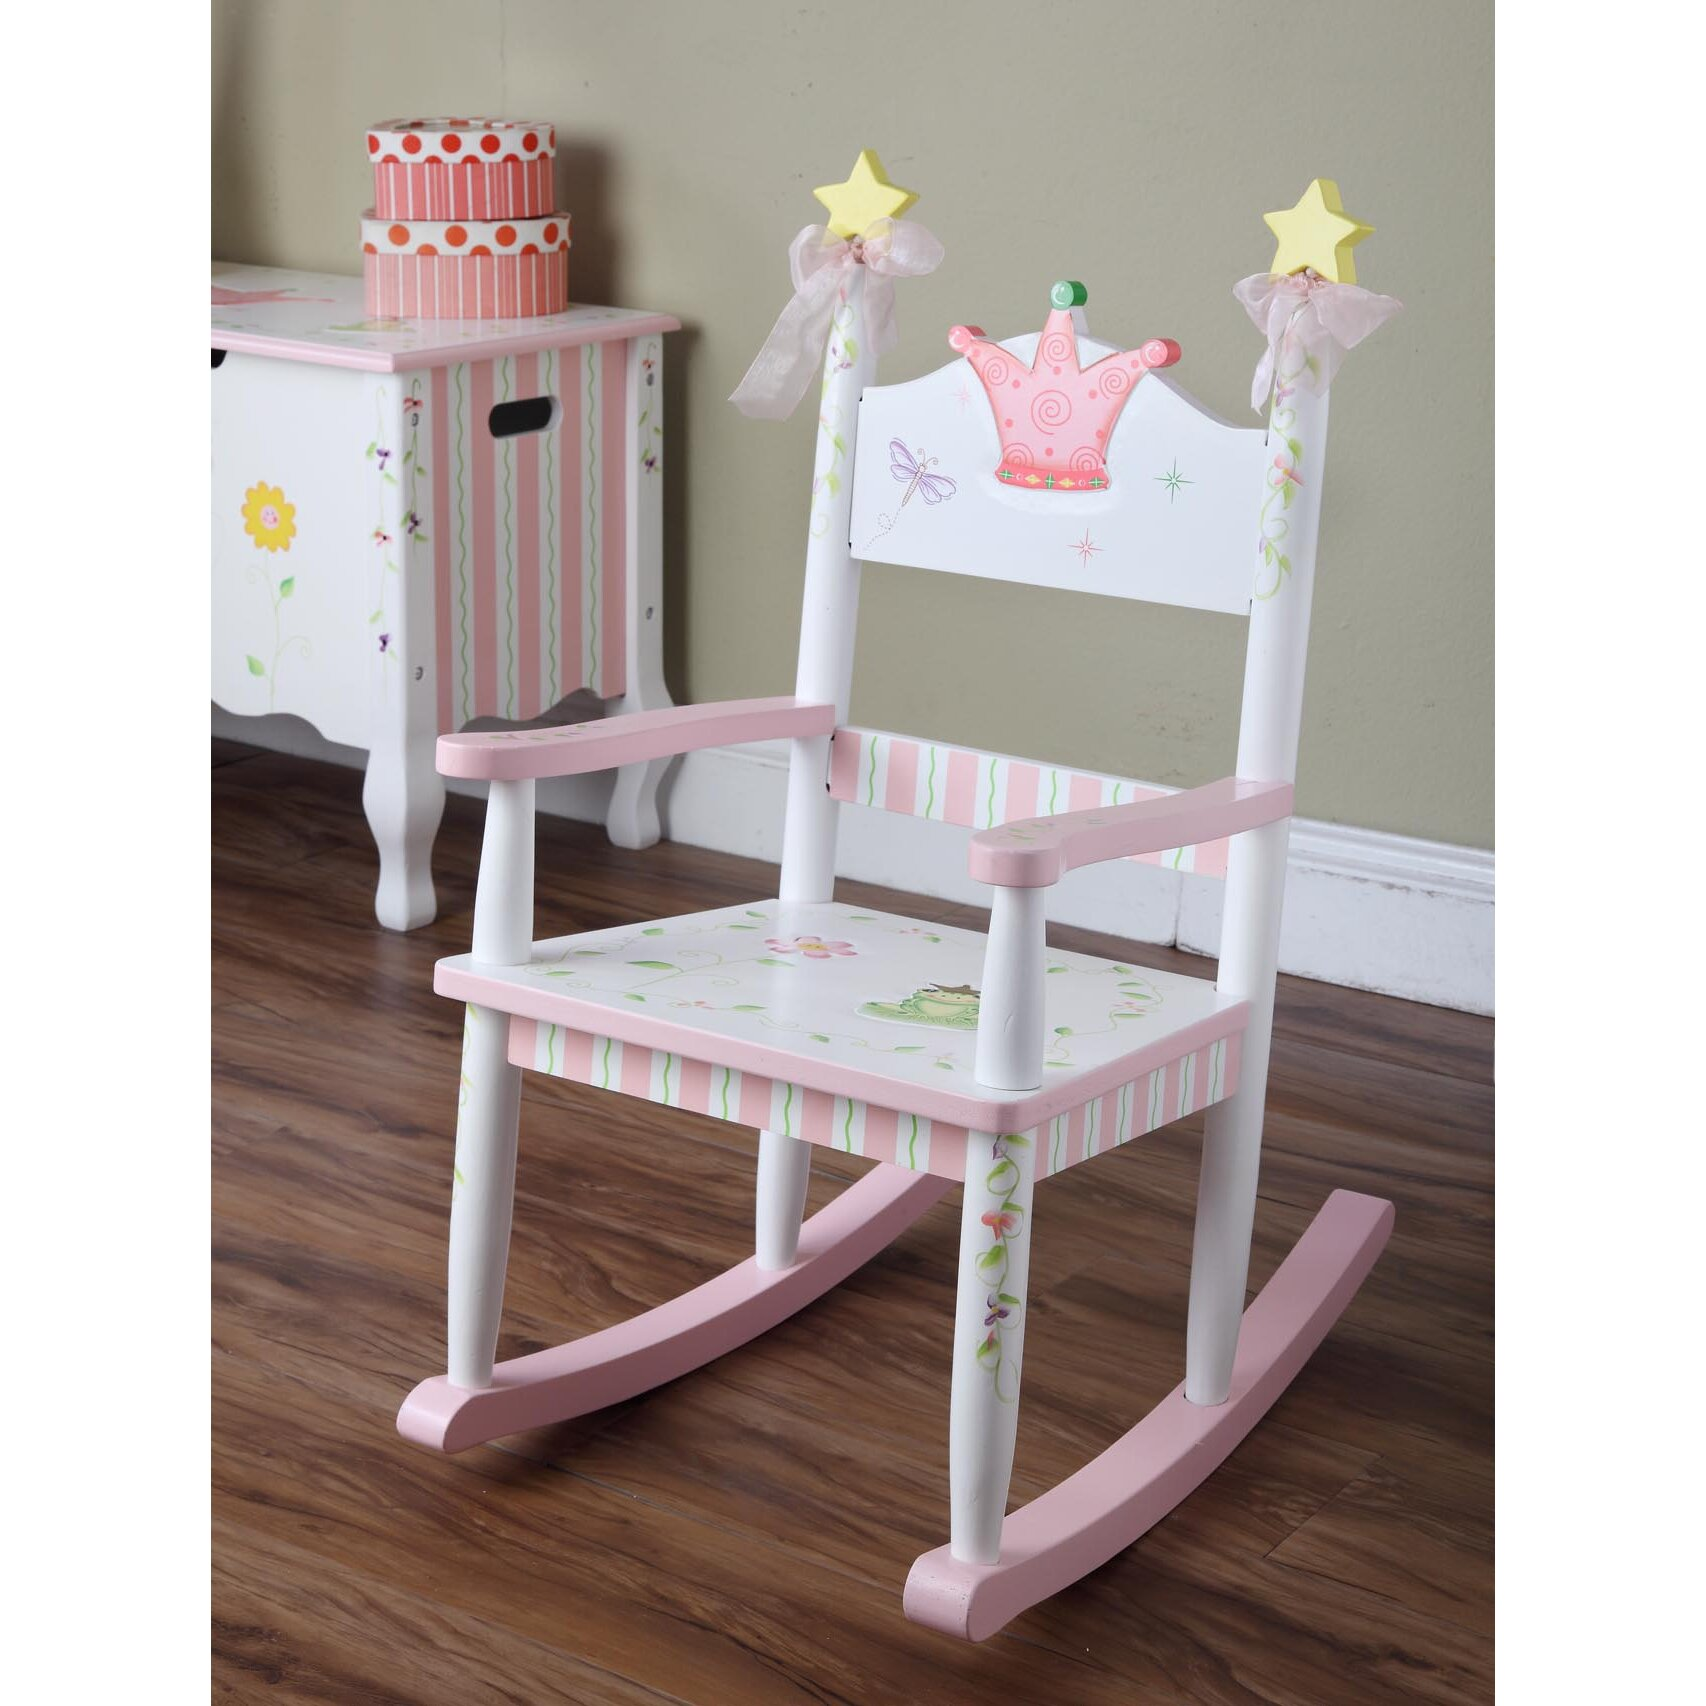 ... Fields Princess and Frog Kids Rocking Chair & Reviews  Wayfair